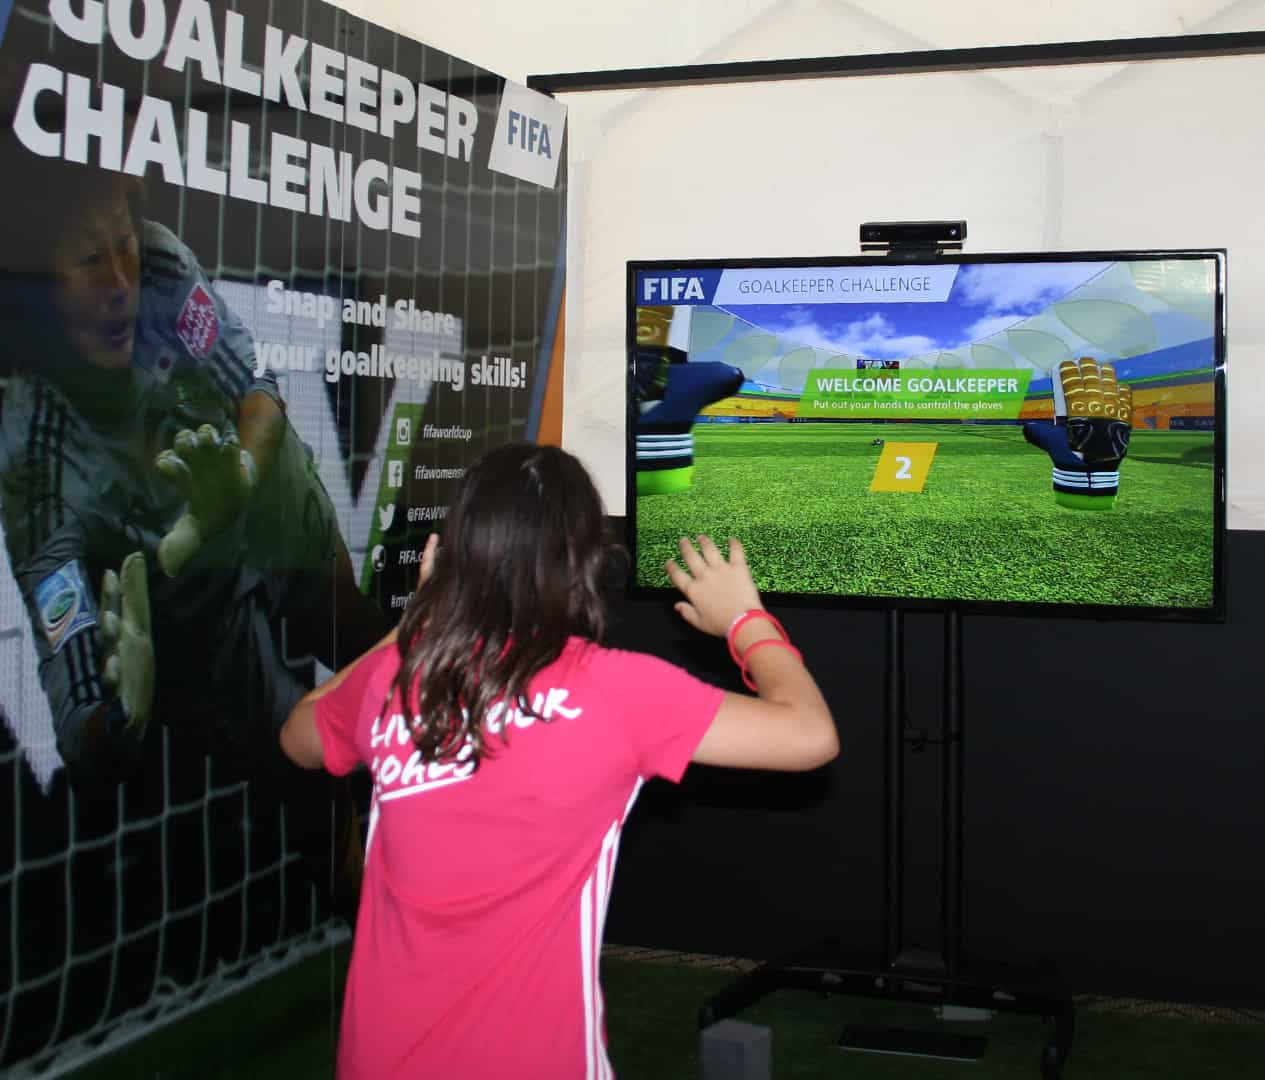 PLayer playing gesture game